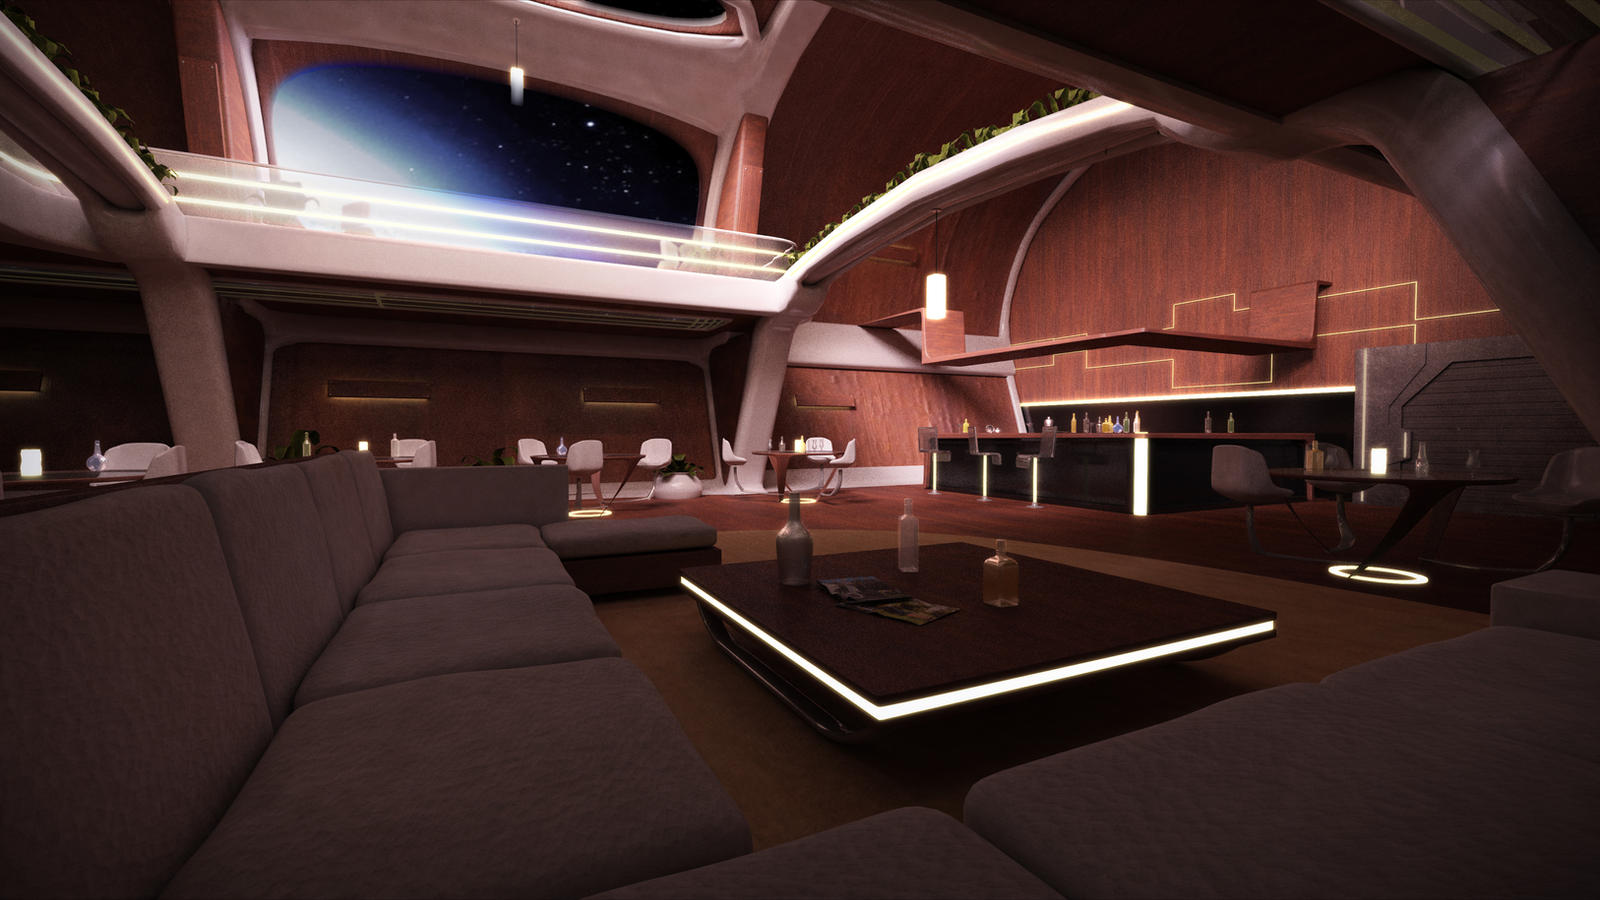 3d workshop luxurious spaceship interior by stormxf3 on for Images of interior